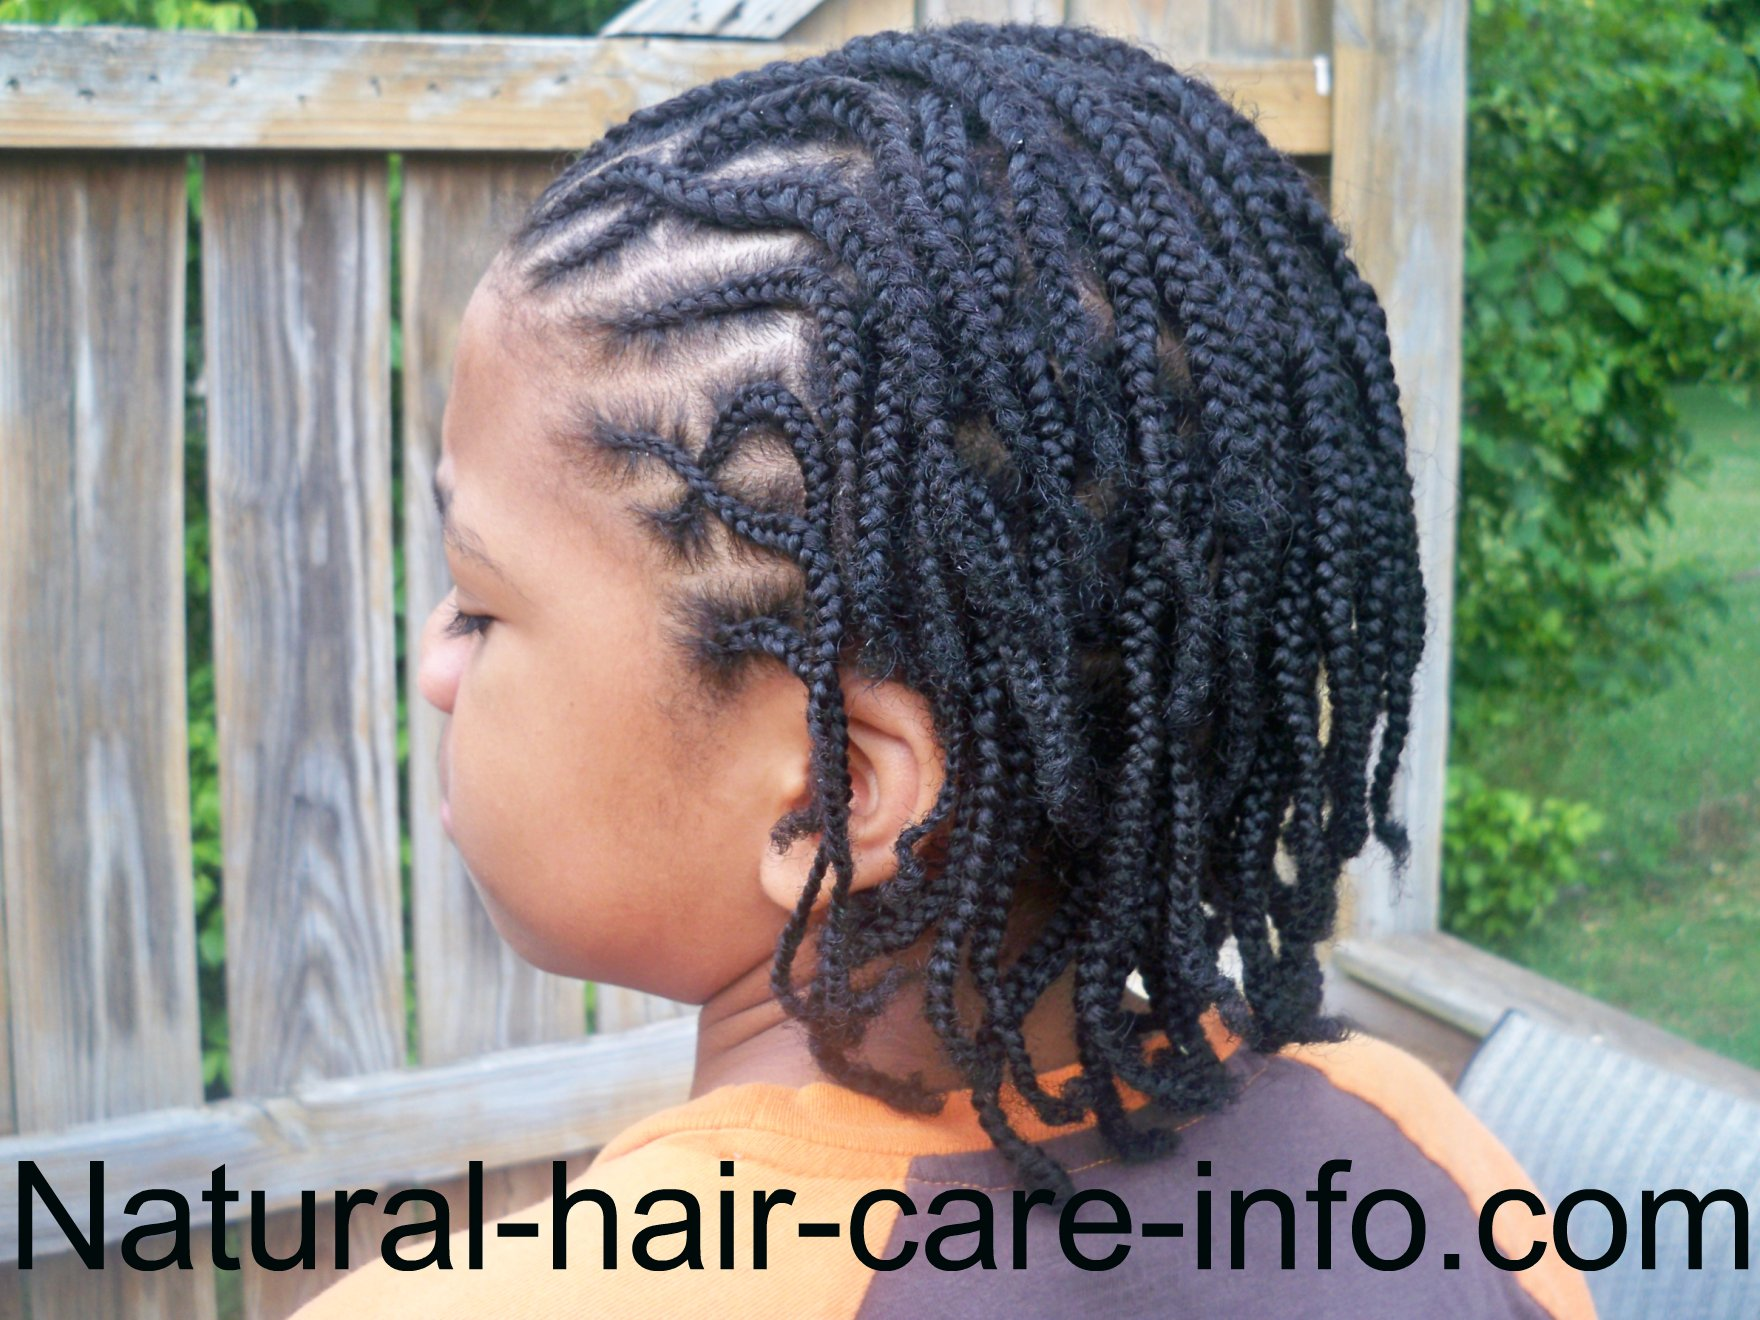 black mens hairstyles per request more braid styles for men. 1760 x 1320.Braided Mohawk Hairstyles Black Girls